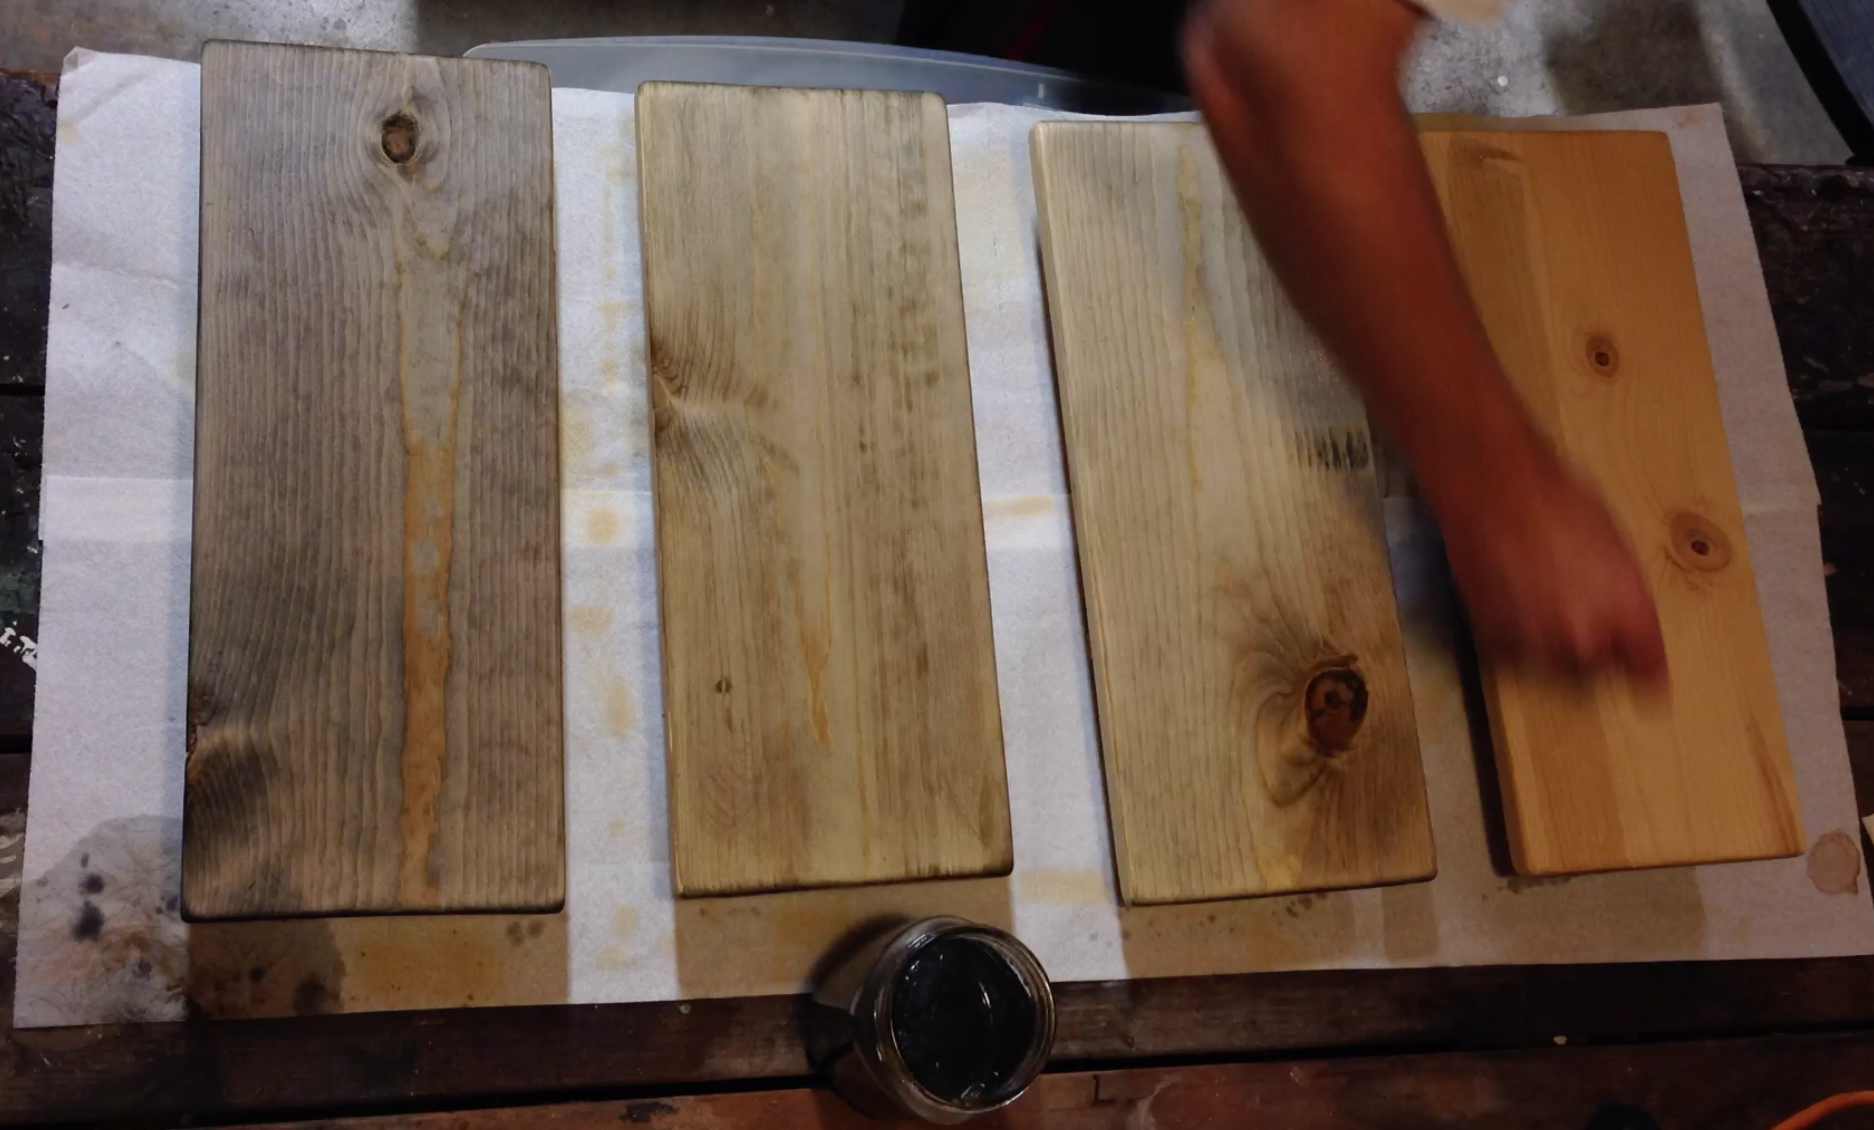 use a foam brush to apply oxidation solution to bare wood